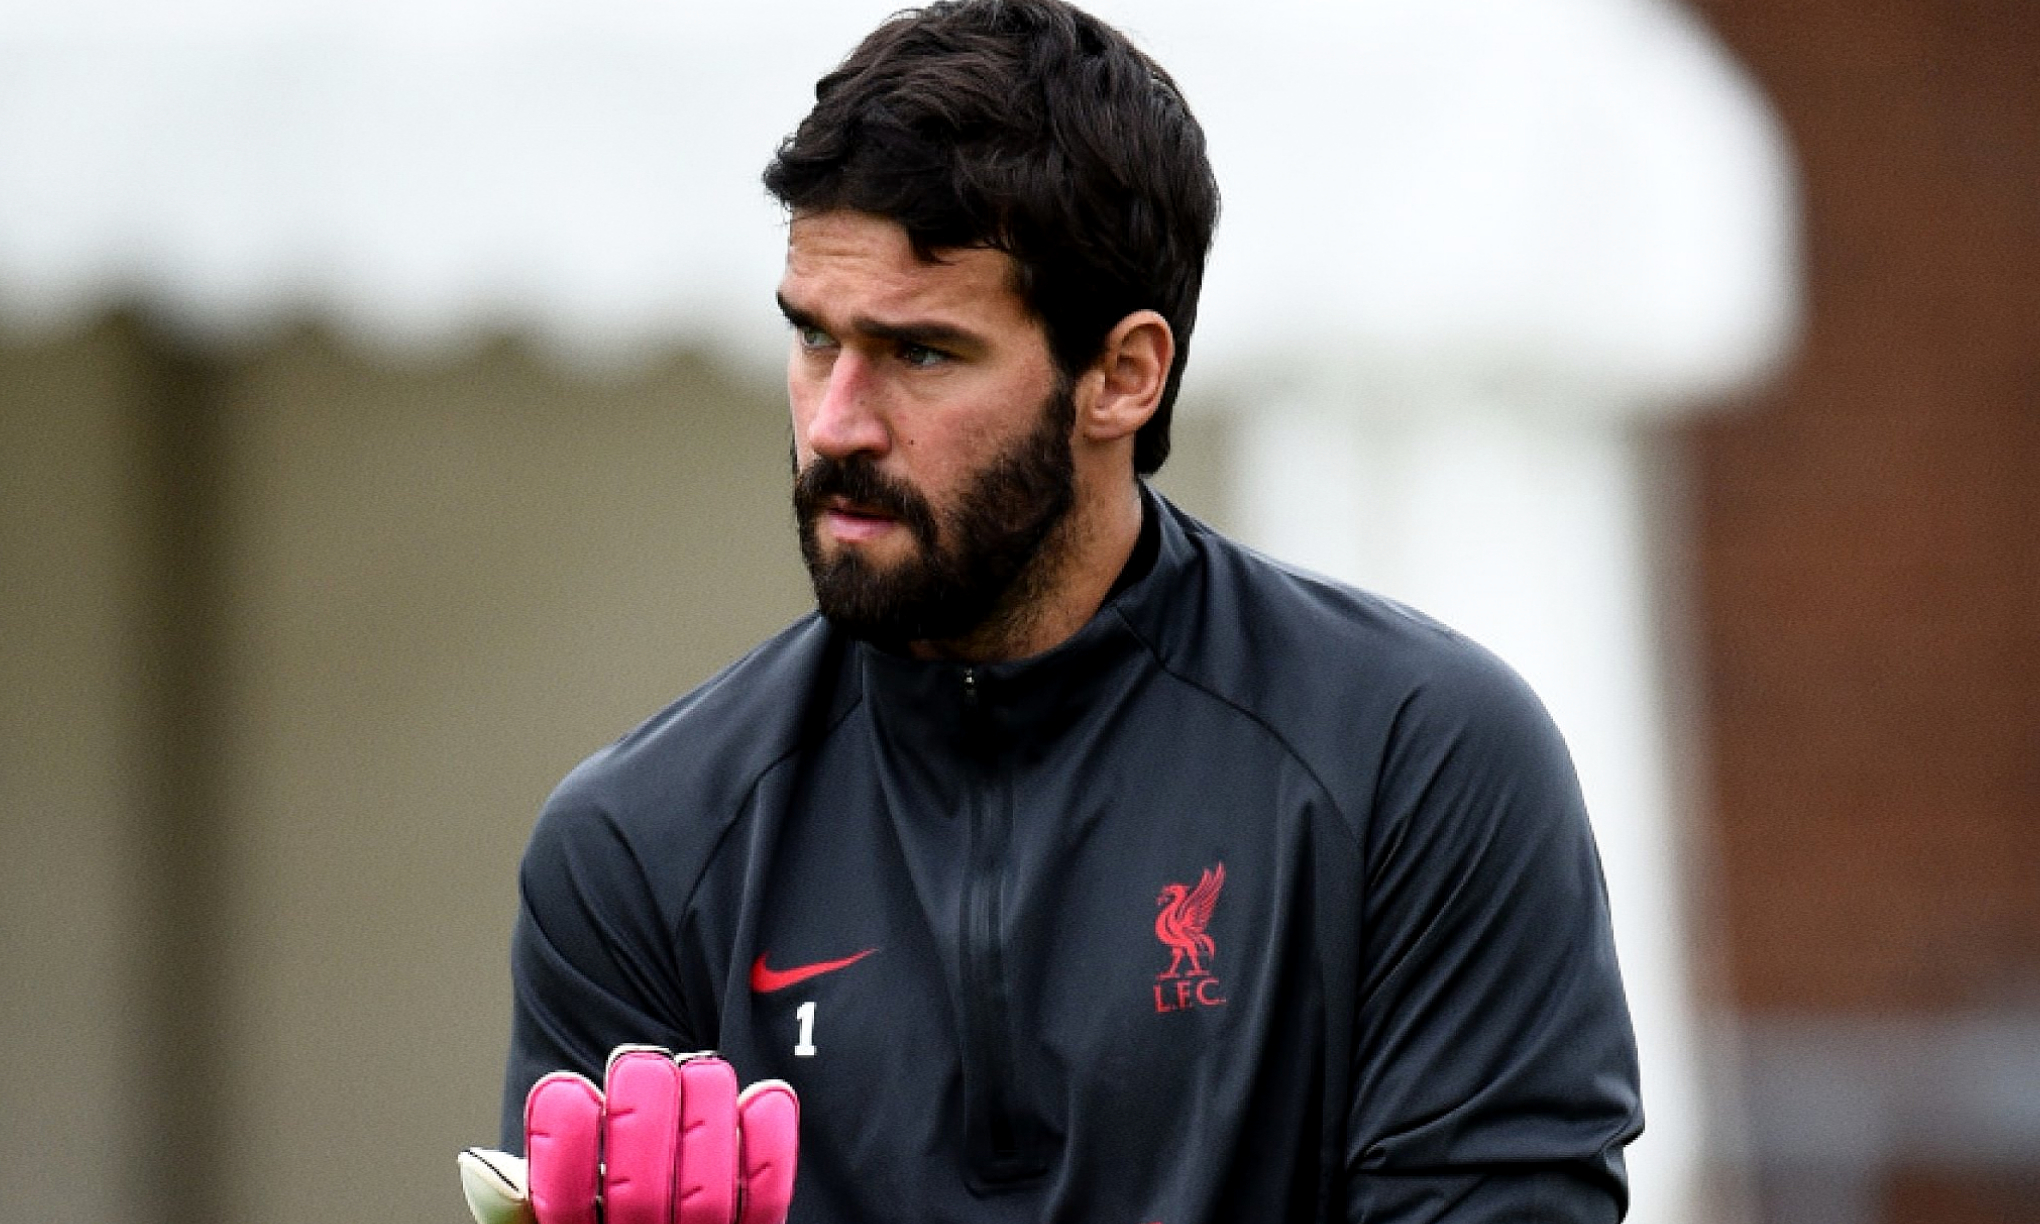 Alisson Becker reveals prayer help him return from injury earlier than planned.